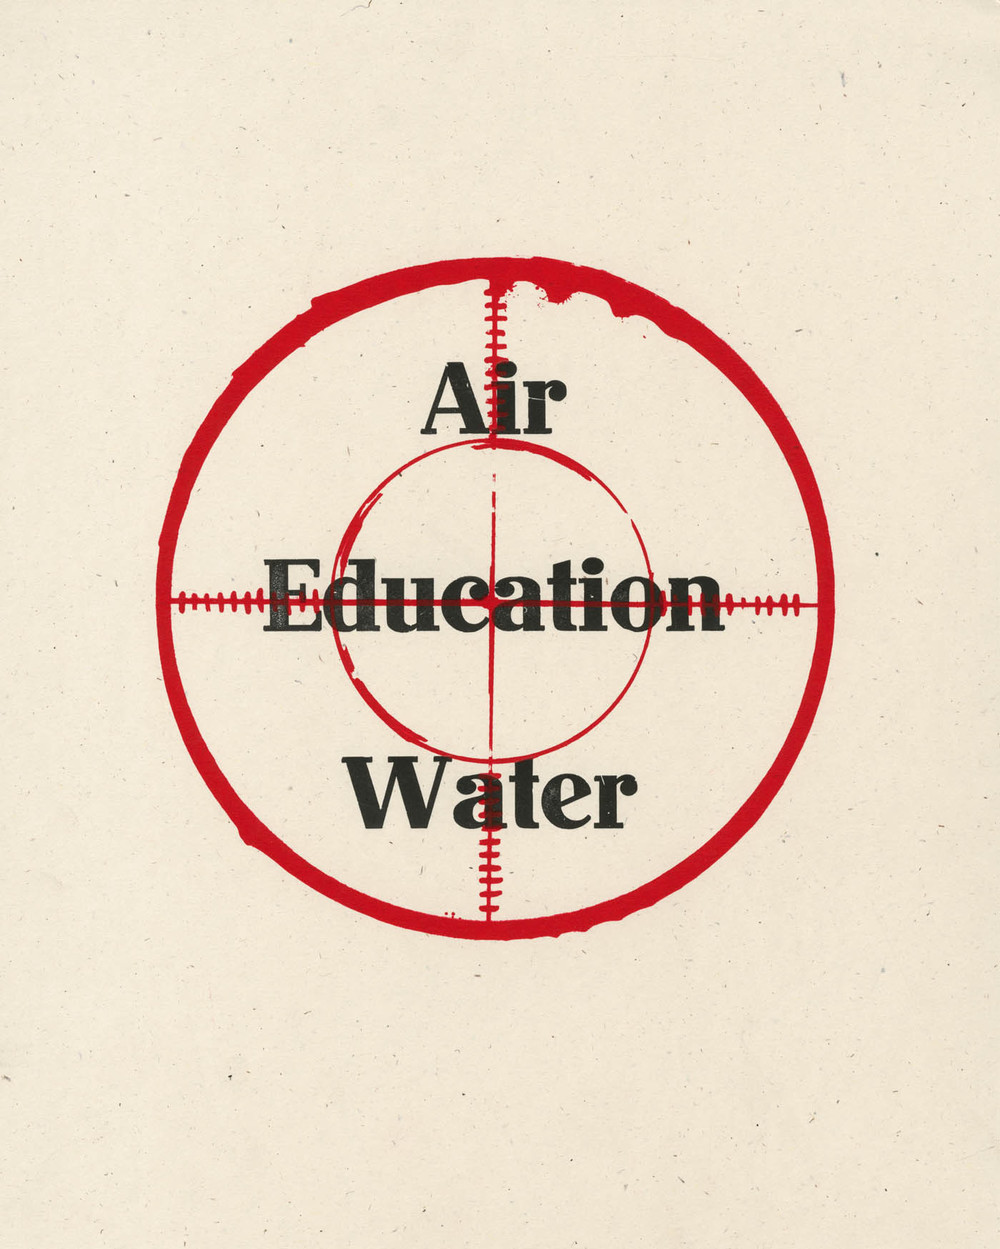 Air Education Water